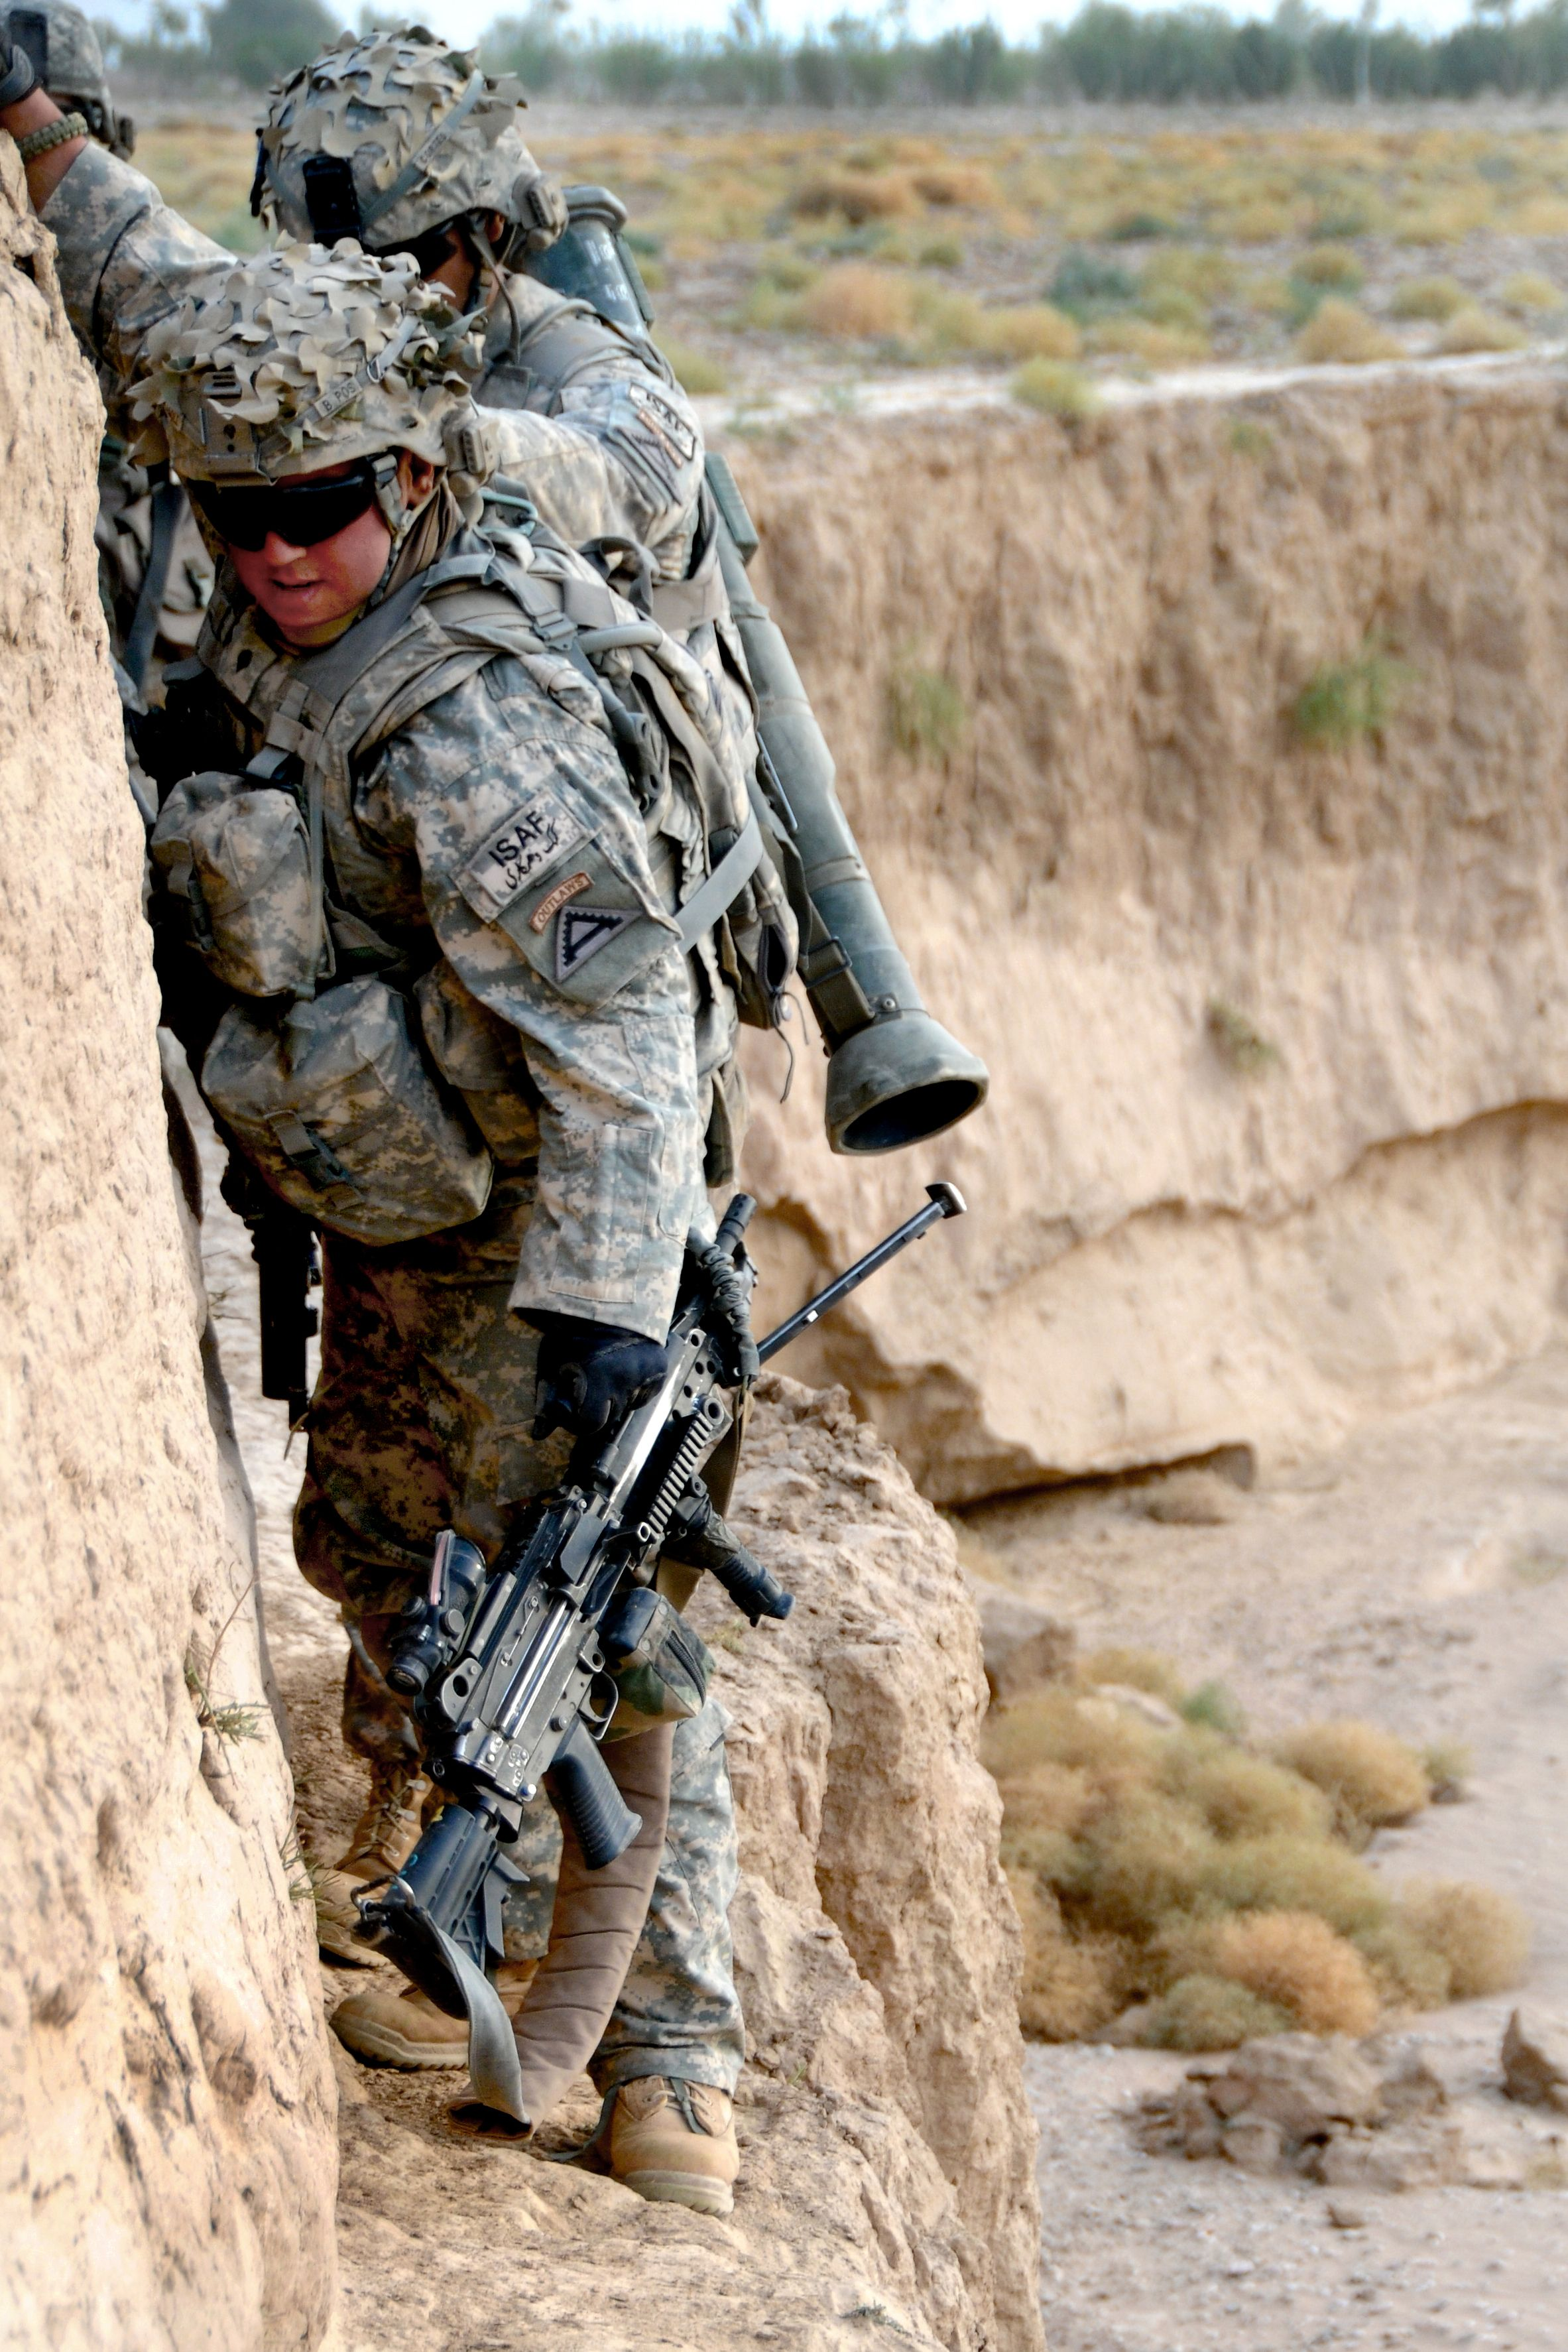 Us Army Soldiers Cling To A Narrow Wall While Transiting A Dry River Bed Zabul Province 2010 2365 X 3547 Us Army Soldier Army Rangers Army Soldier